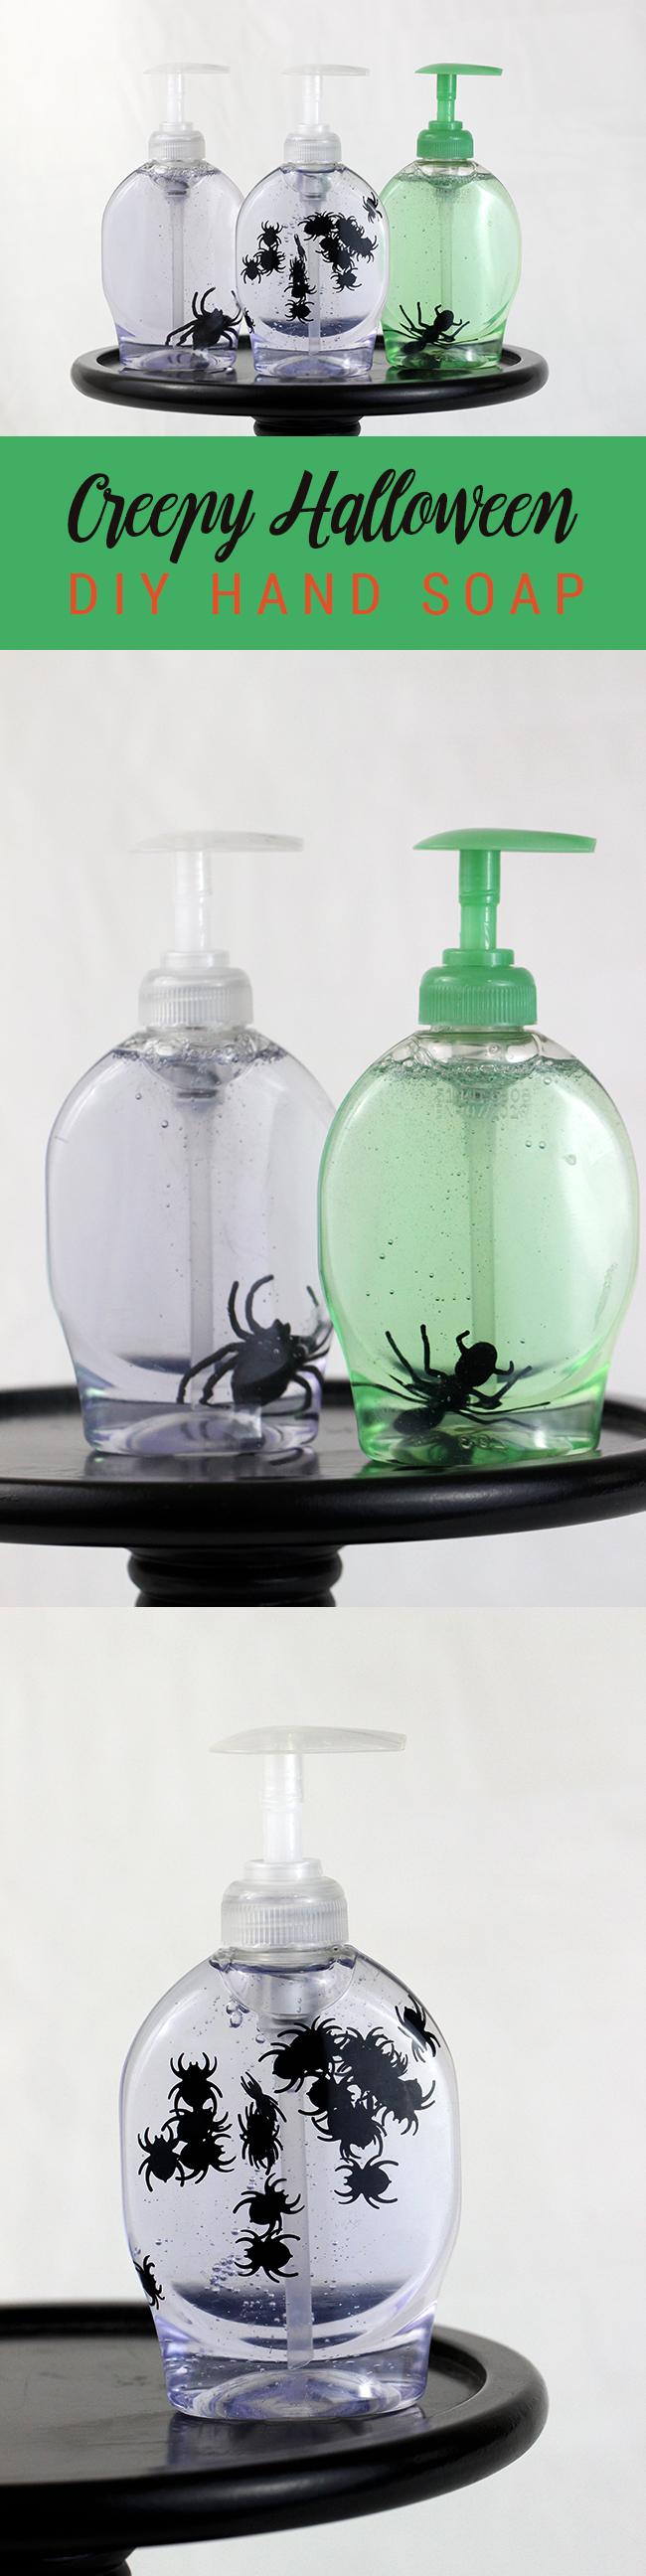 15 Superb Dollar Store DIY Halloween Crafts You Can Easily Make